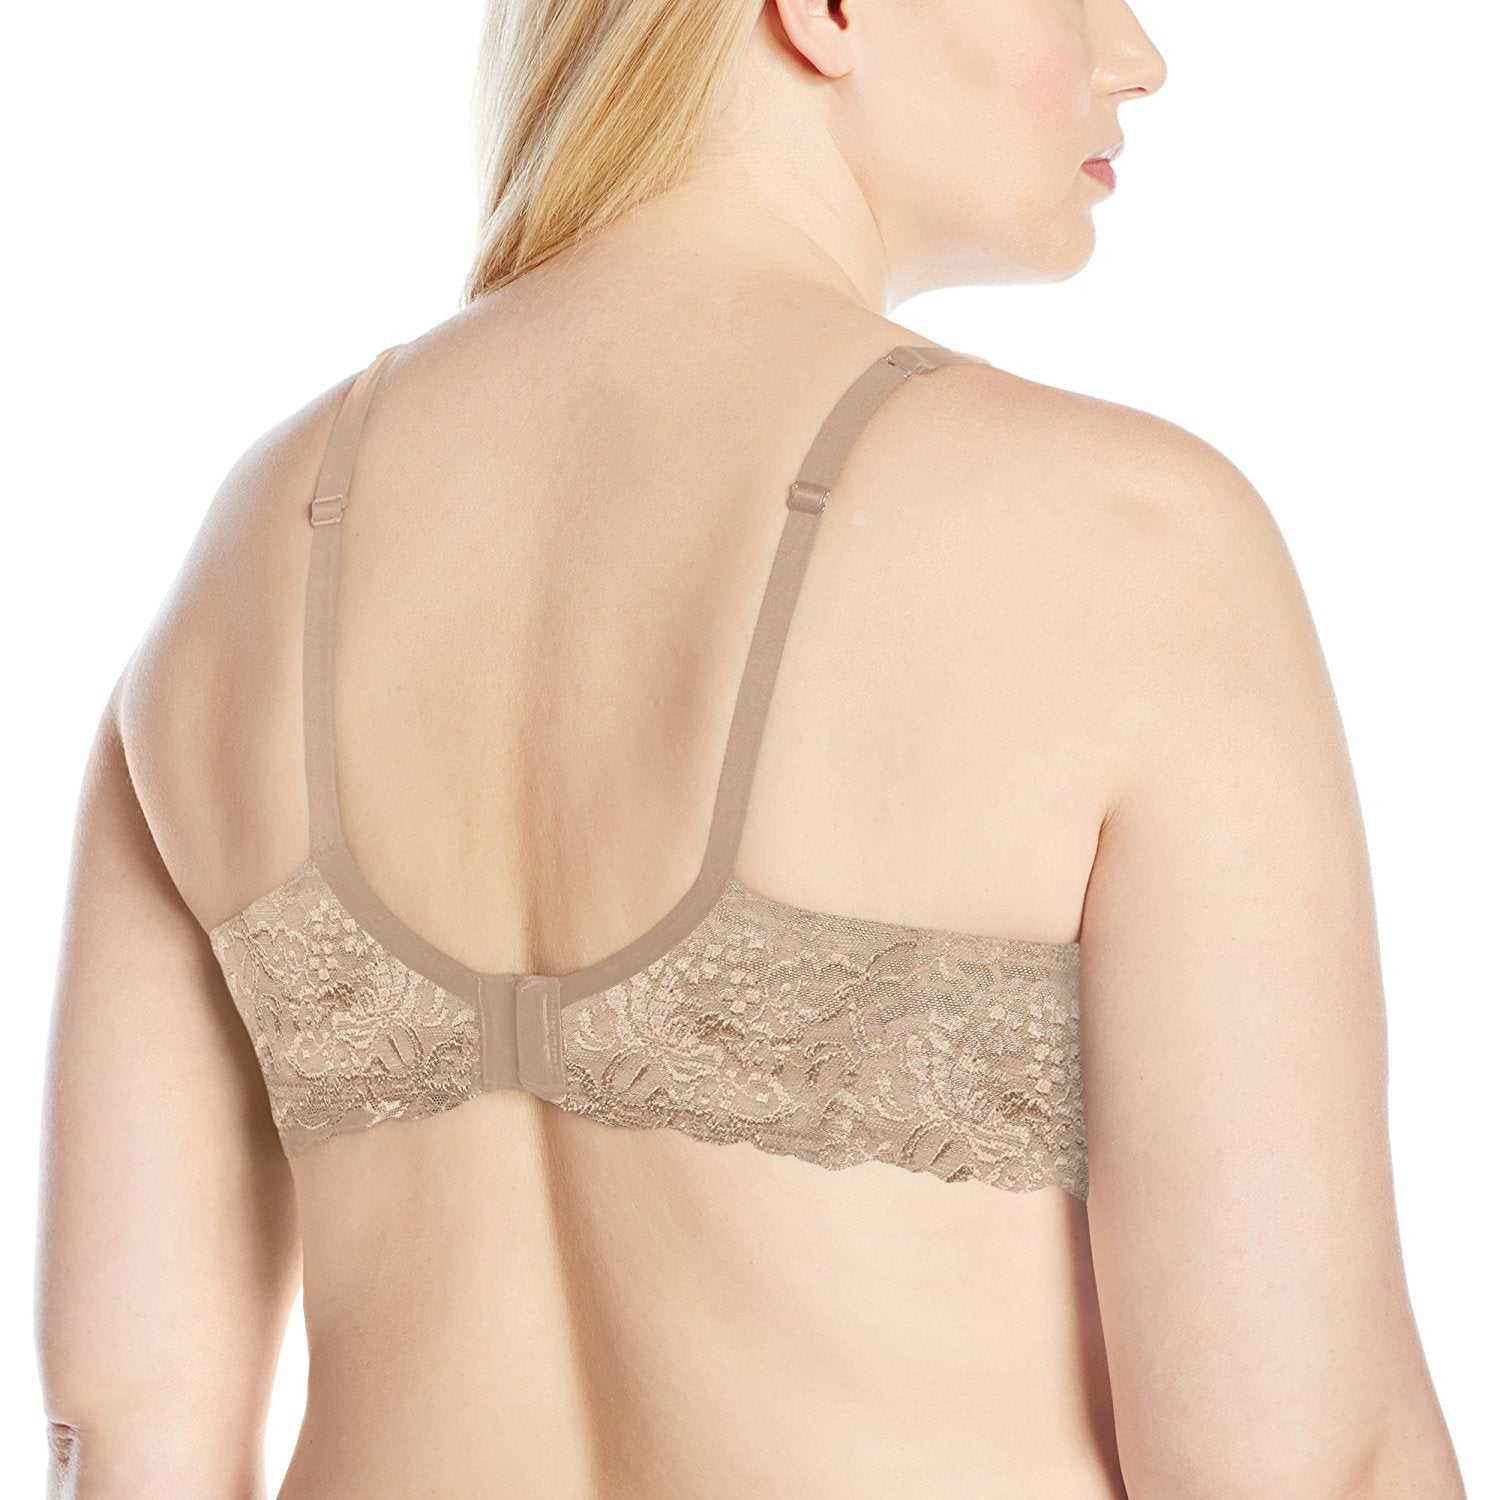 70a9a34490 Curvy Couture Lace Shine T-Shirt Bra 1102 - The Lingerie Store USA